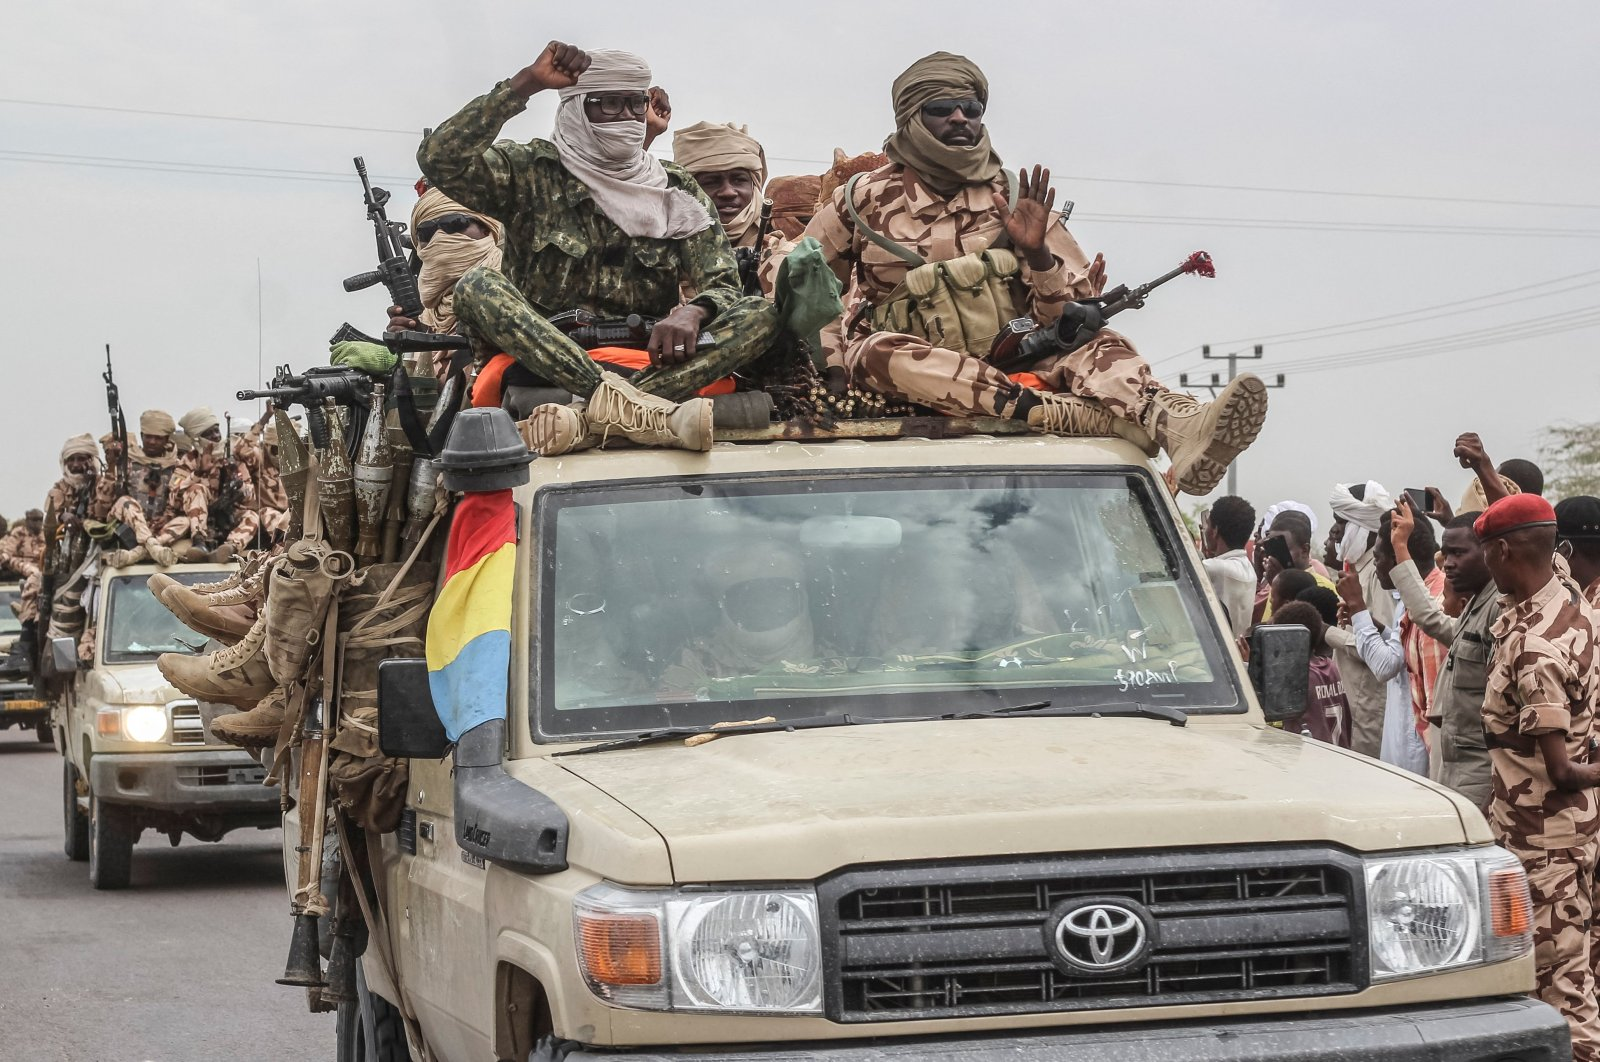 Chadian soldiers celebrate as they return from battle, D'Jamena, Chad, May 9, 2021. (AFP Photo)